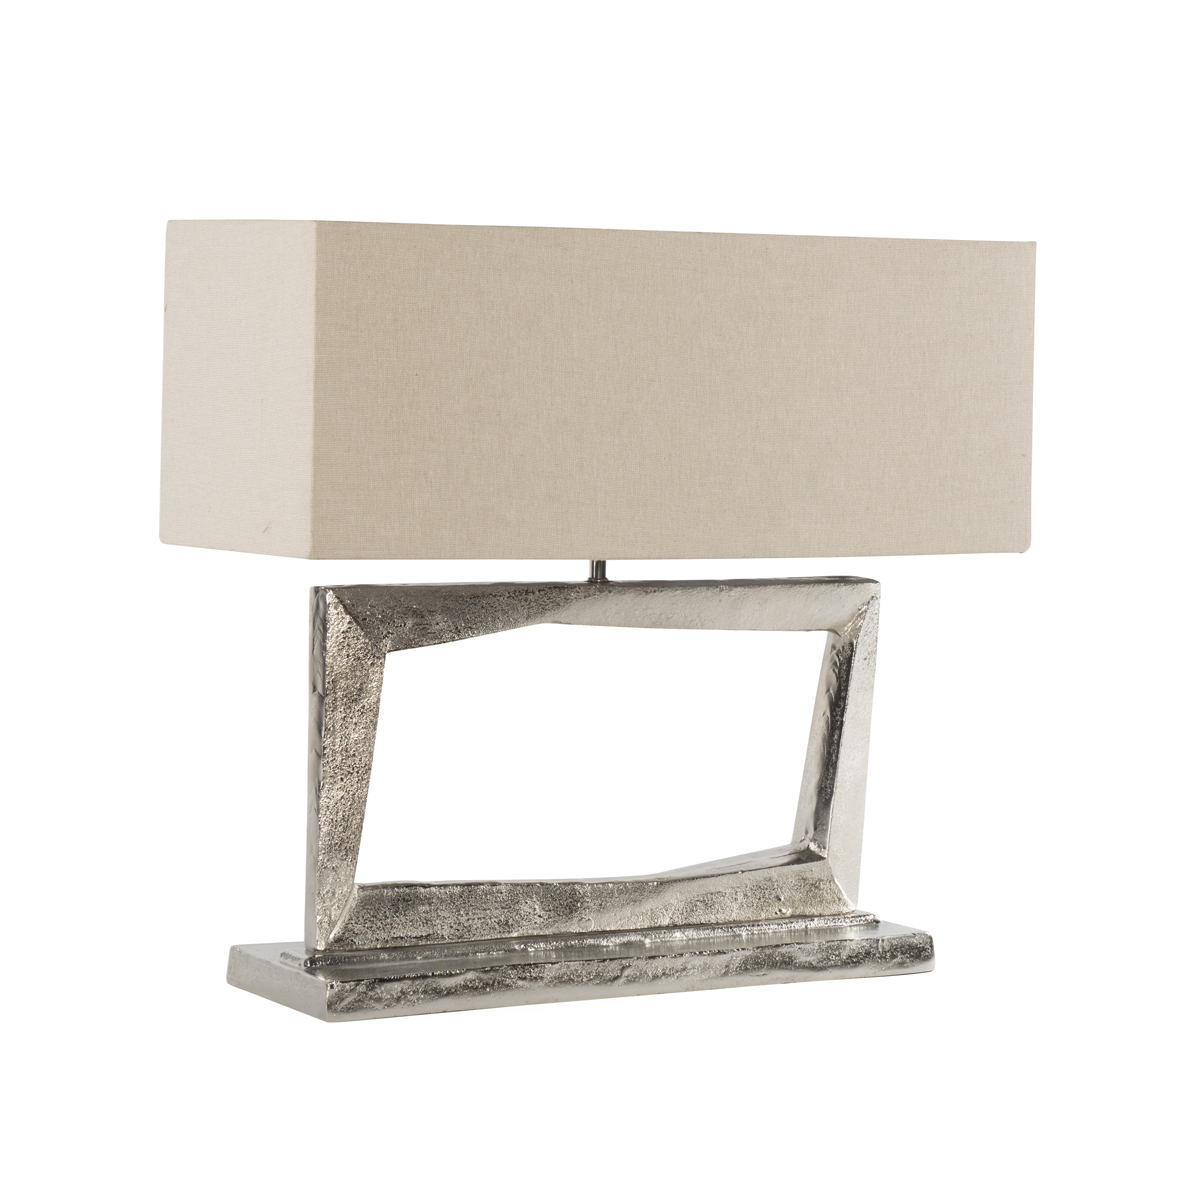 Sofa Open Box Open Box Table Lamp